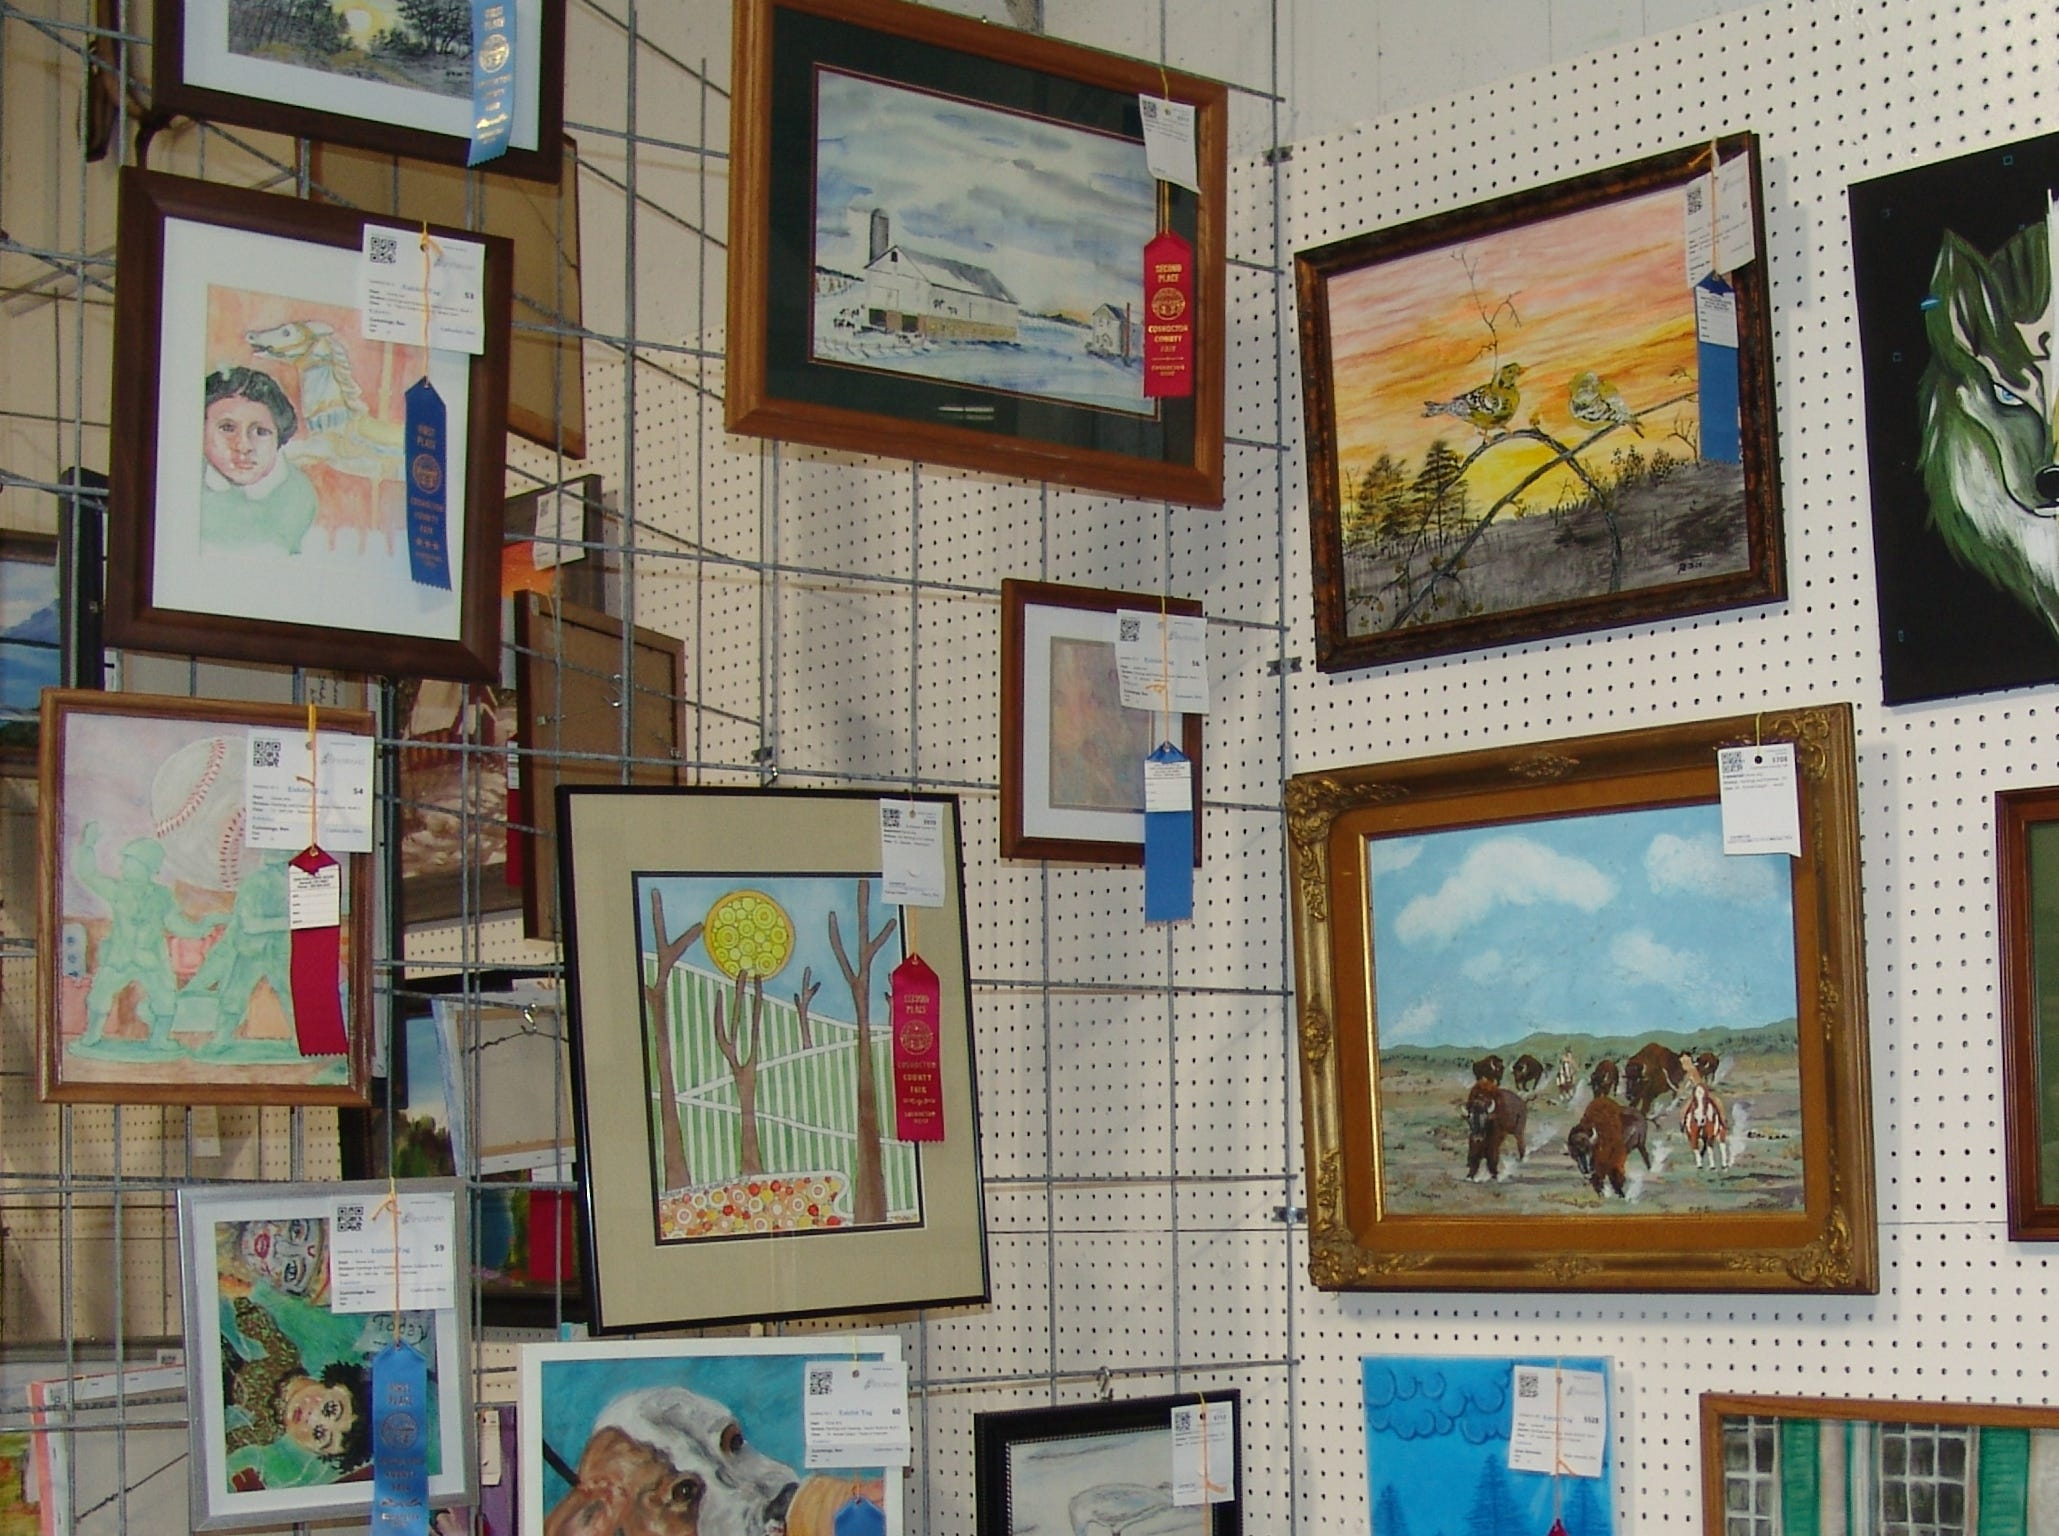 Artwork on display in the Art Hall.